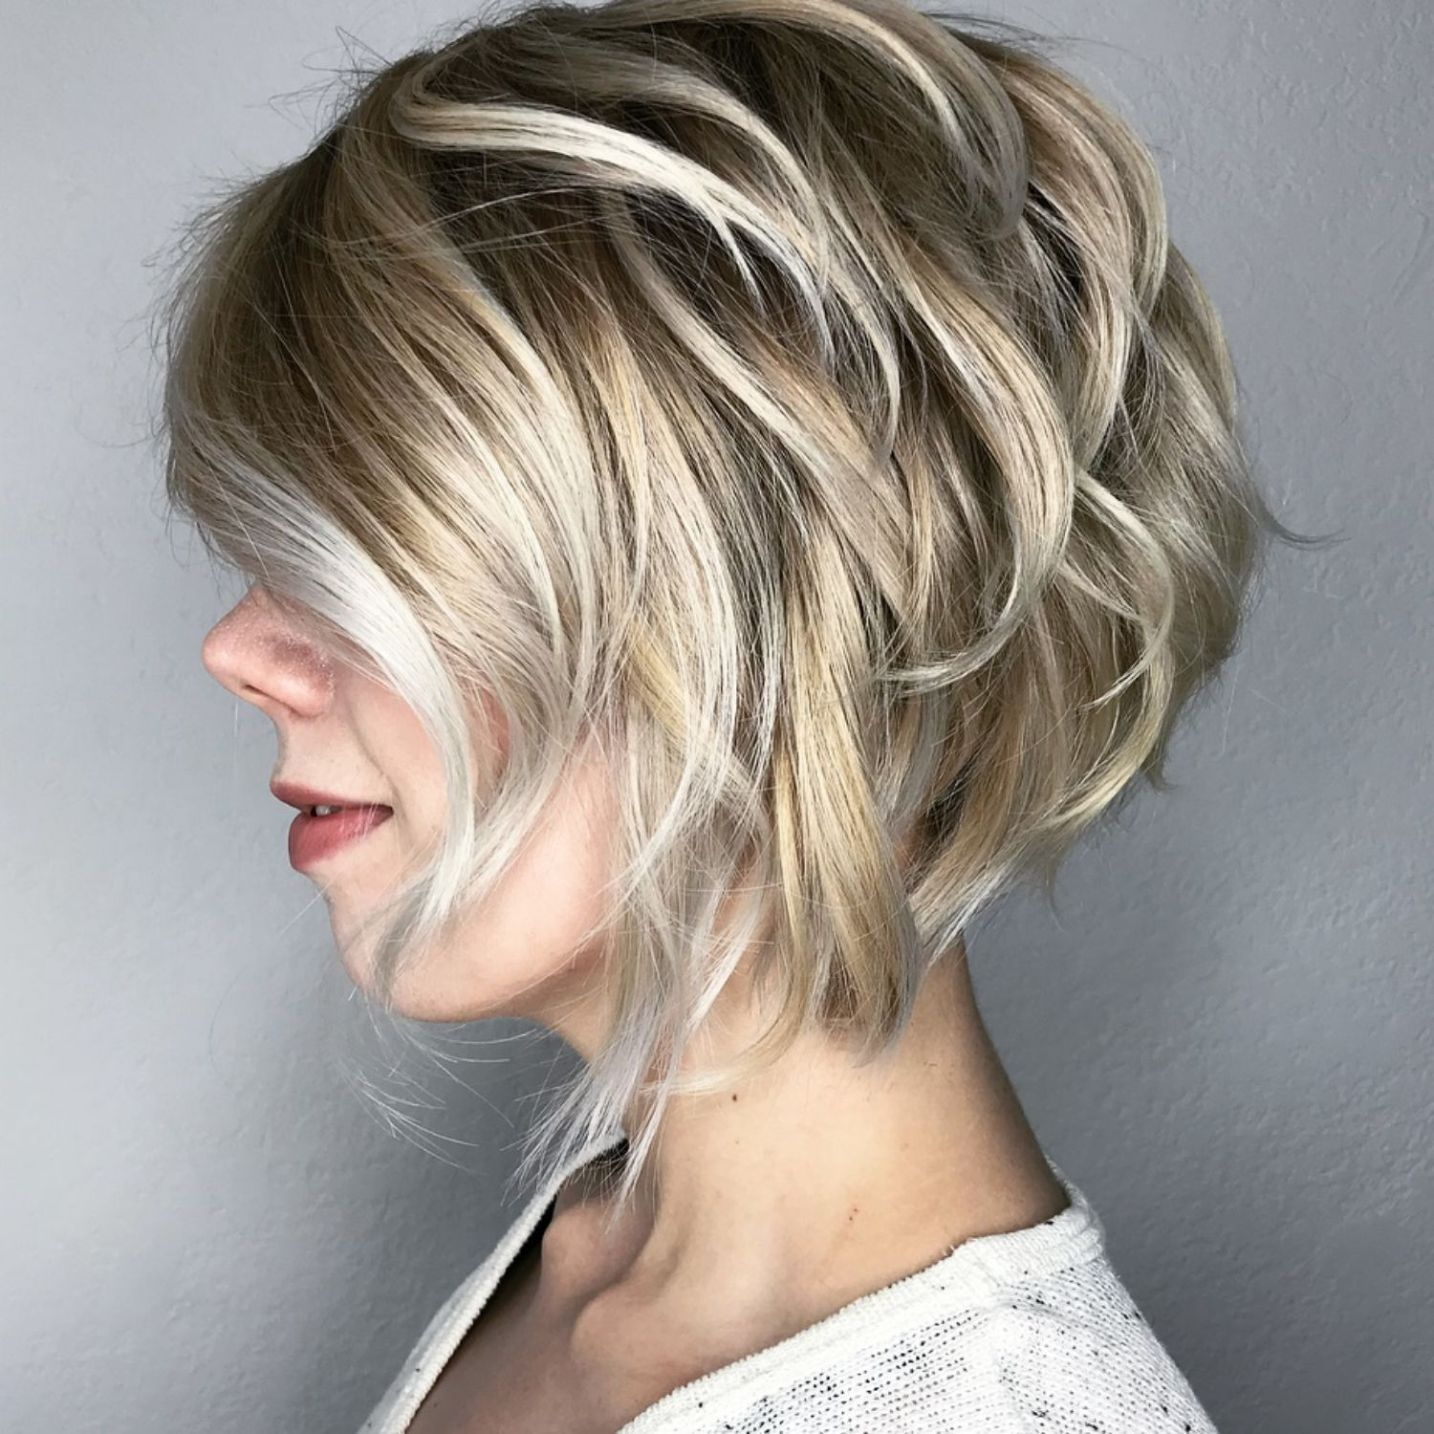 60 Best Short Bob Haircuts and Hairstyles for Women | Short bob haircuts,  Short shag hairstyles, Bob hairstyles